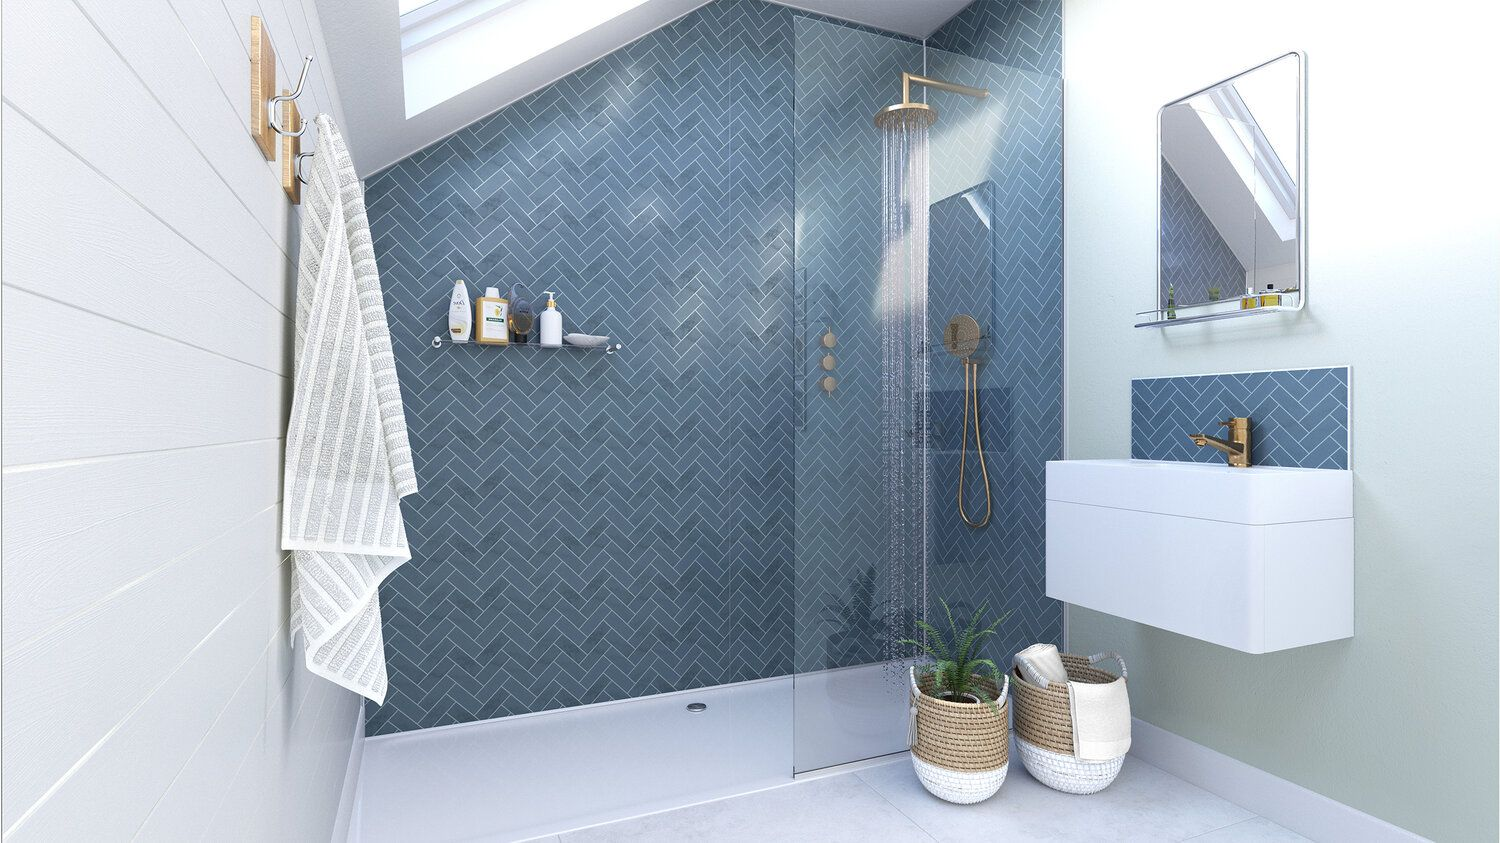 Nicola Broughton The Girl With The Green Sofa Blog Homeshowerwall The Alternative To Tiles Bathroom Wall Panels Bathroom Trends Herringbone Tile Bathroom